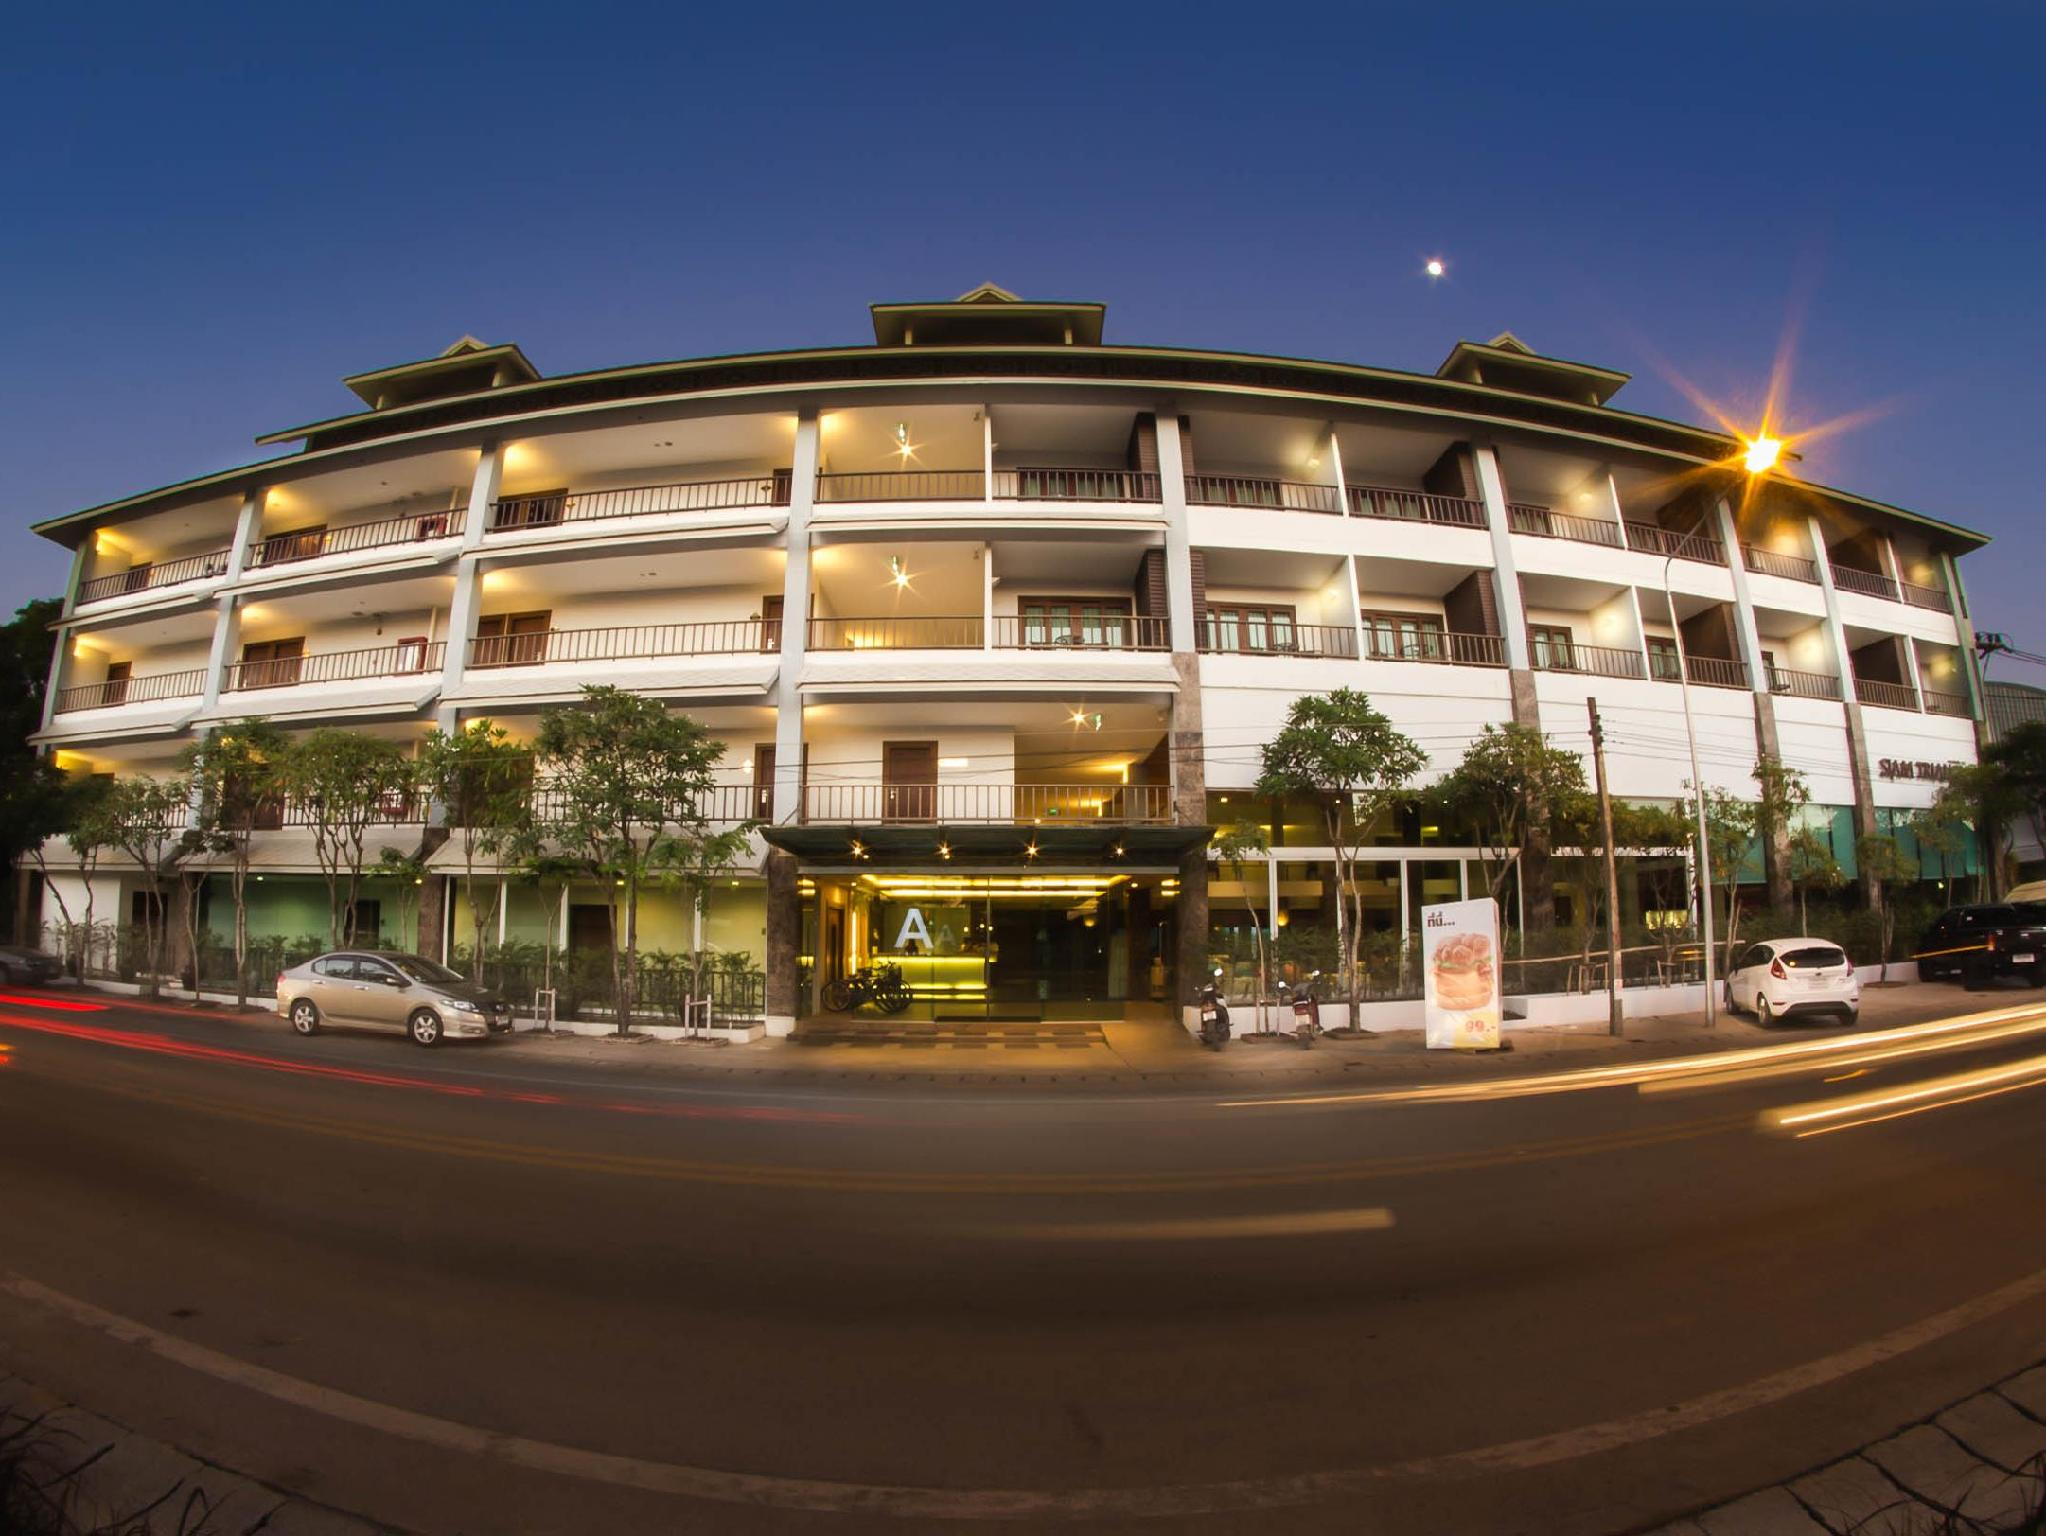 Siam Triangle Hotel Chiang Saen